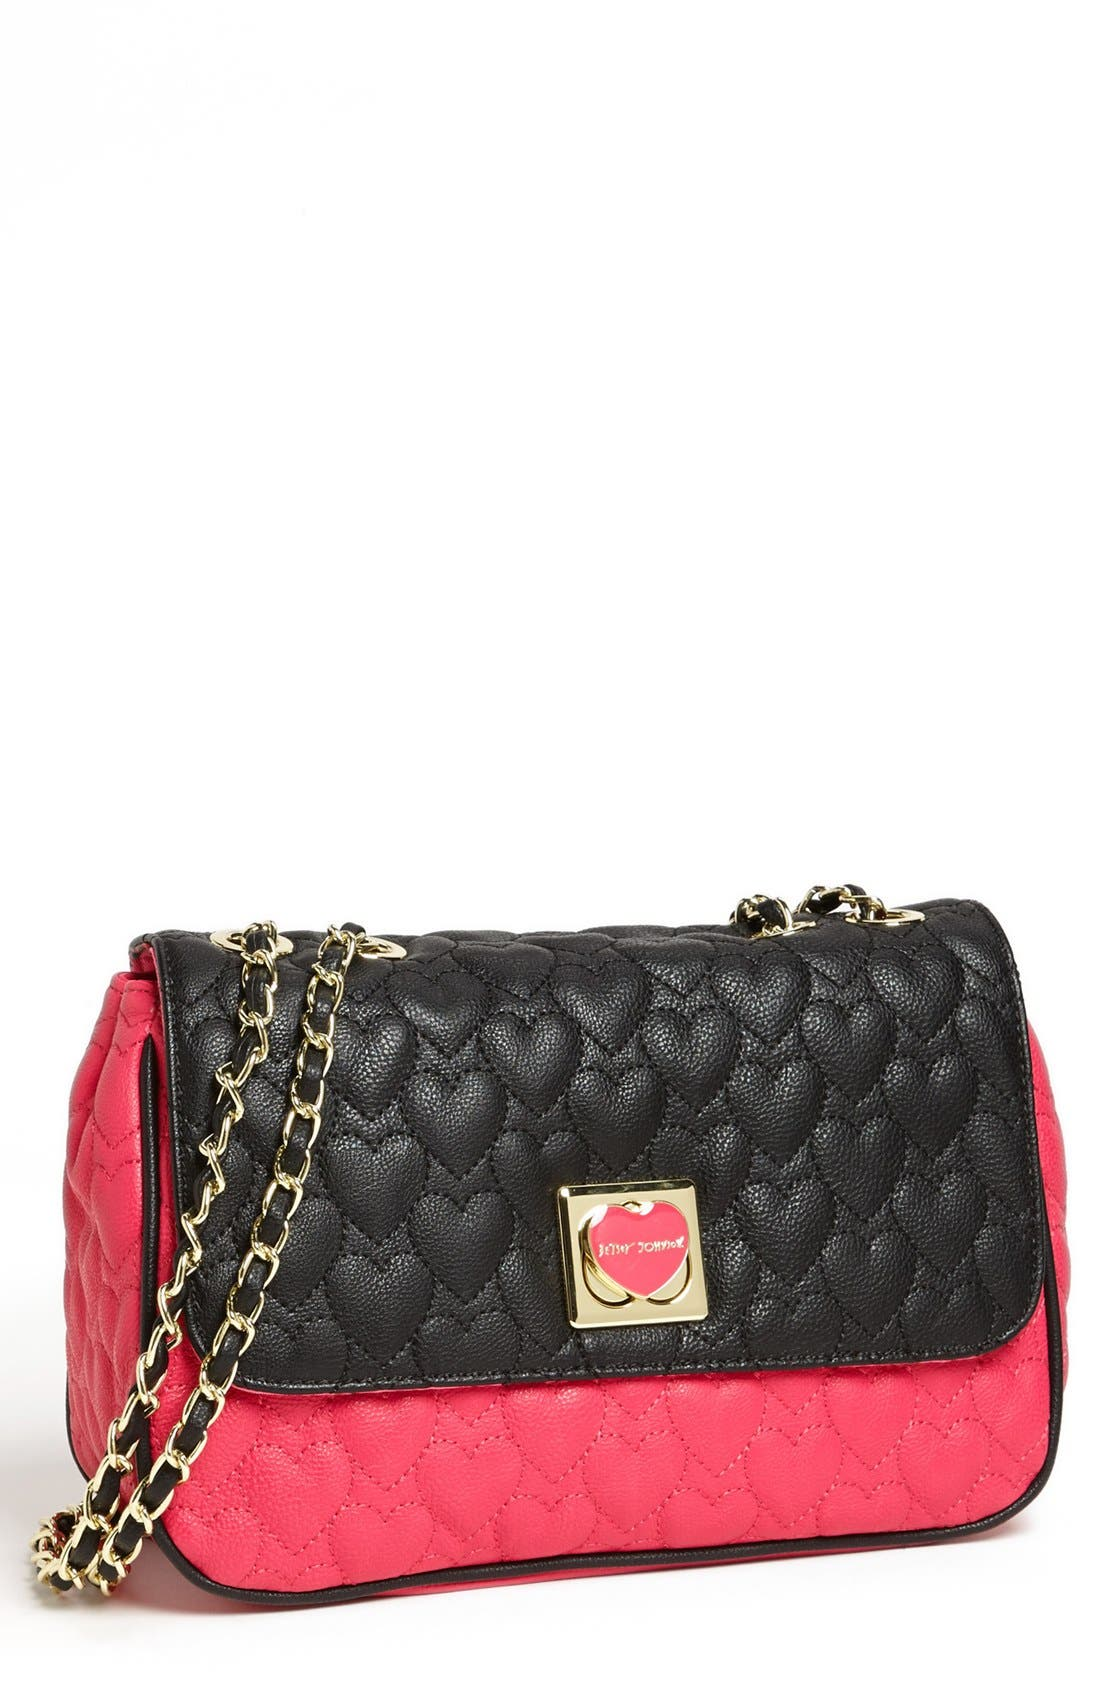 Alternate Image 1 Selected - Betsey Johnson 'Will You Be Mine' Crossbody Bag